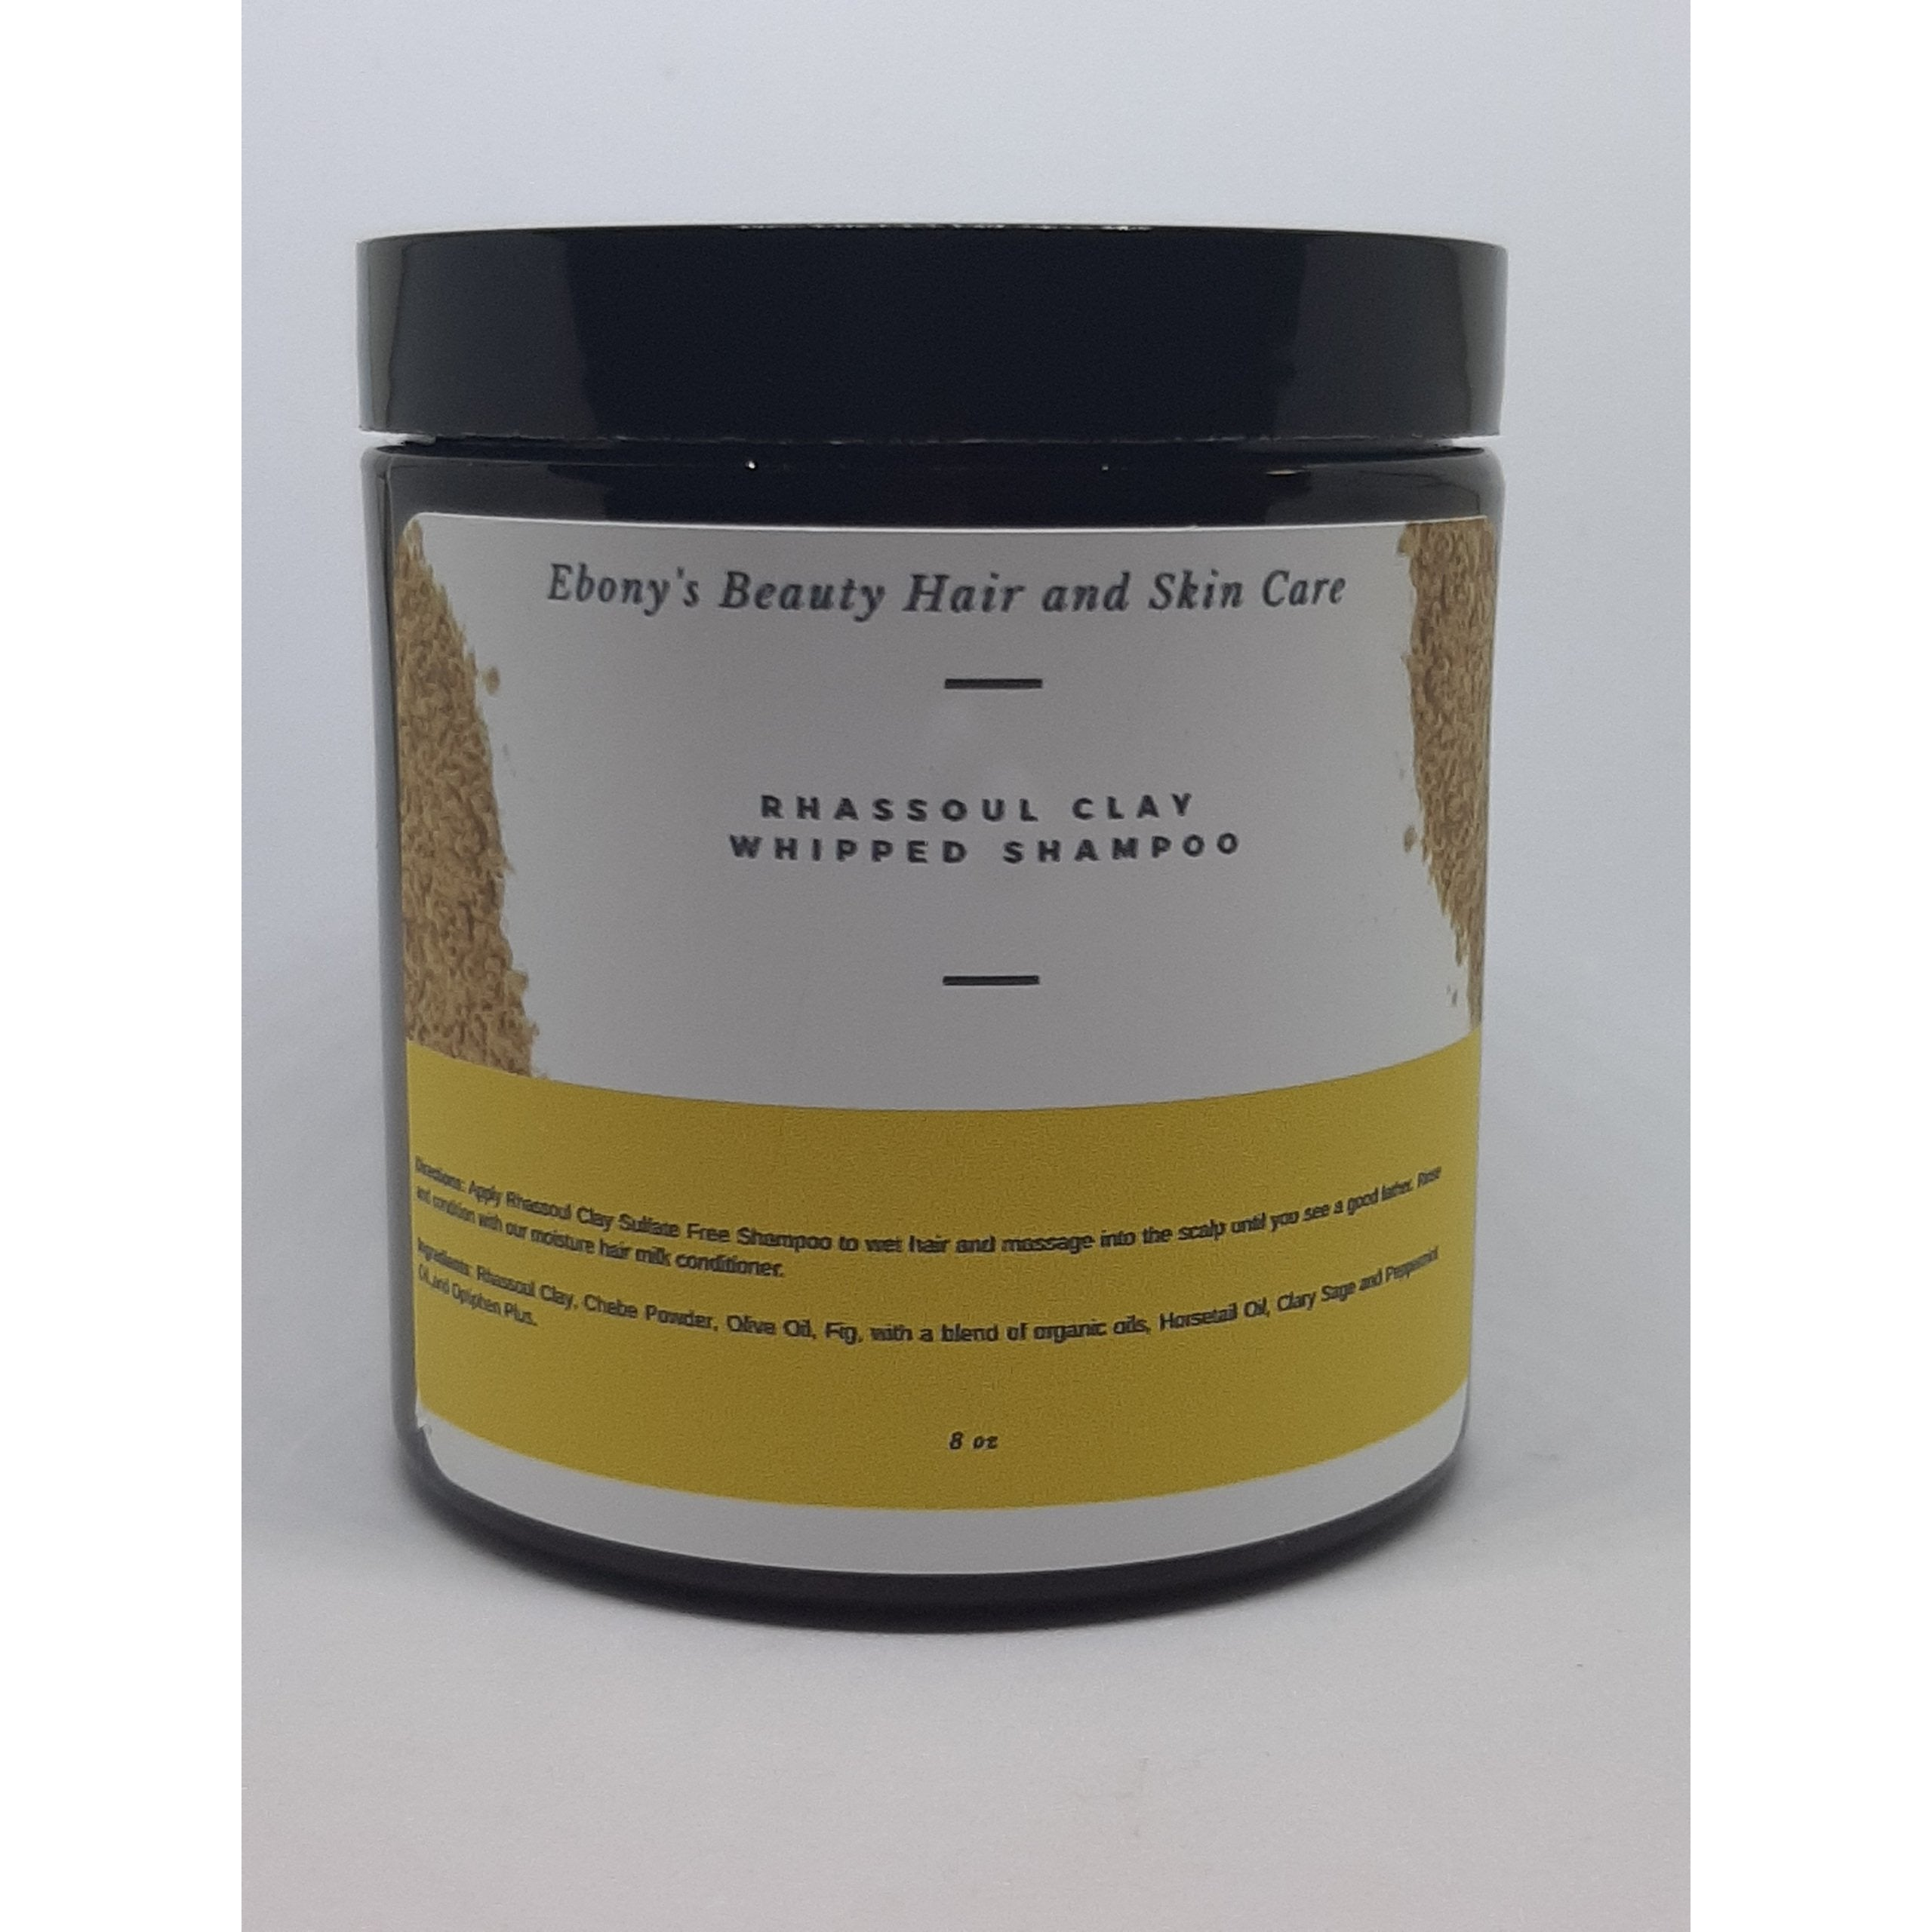 Rhassoul Clay Whipped Shampoo - Ebony's Beauty Hair and Skin Care LLC